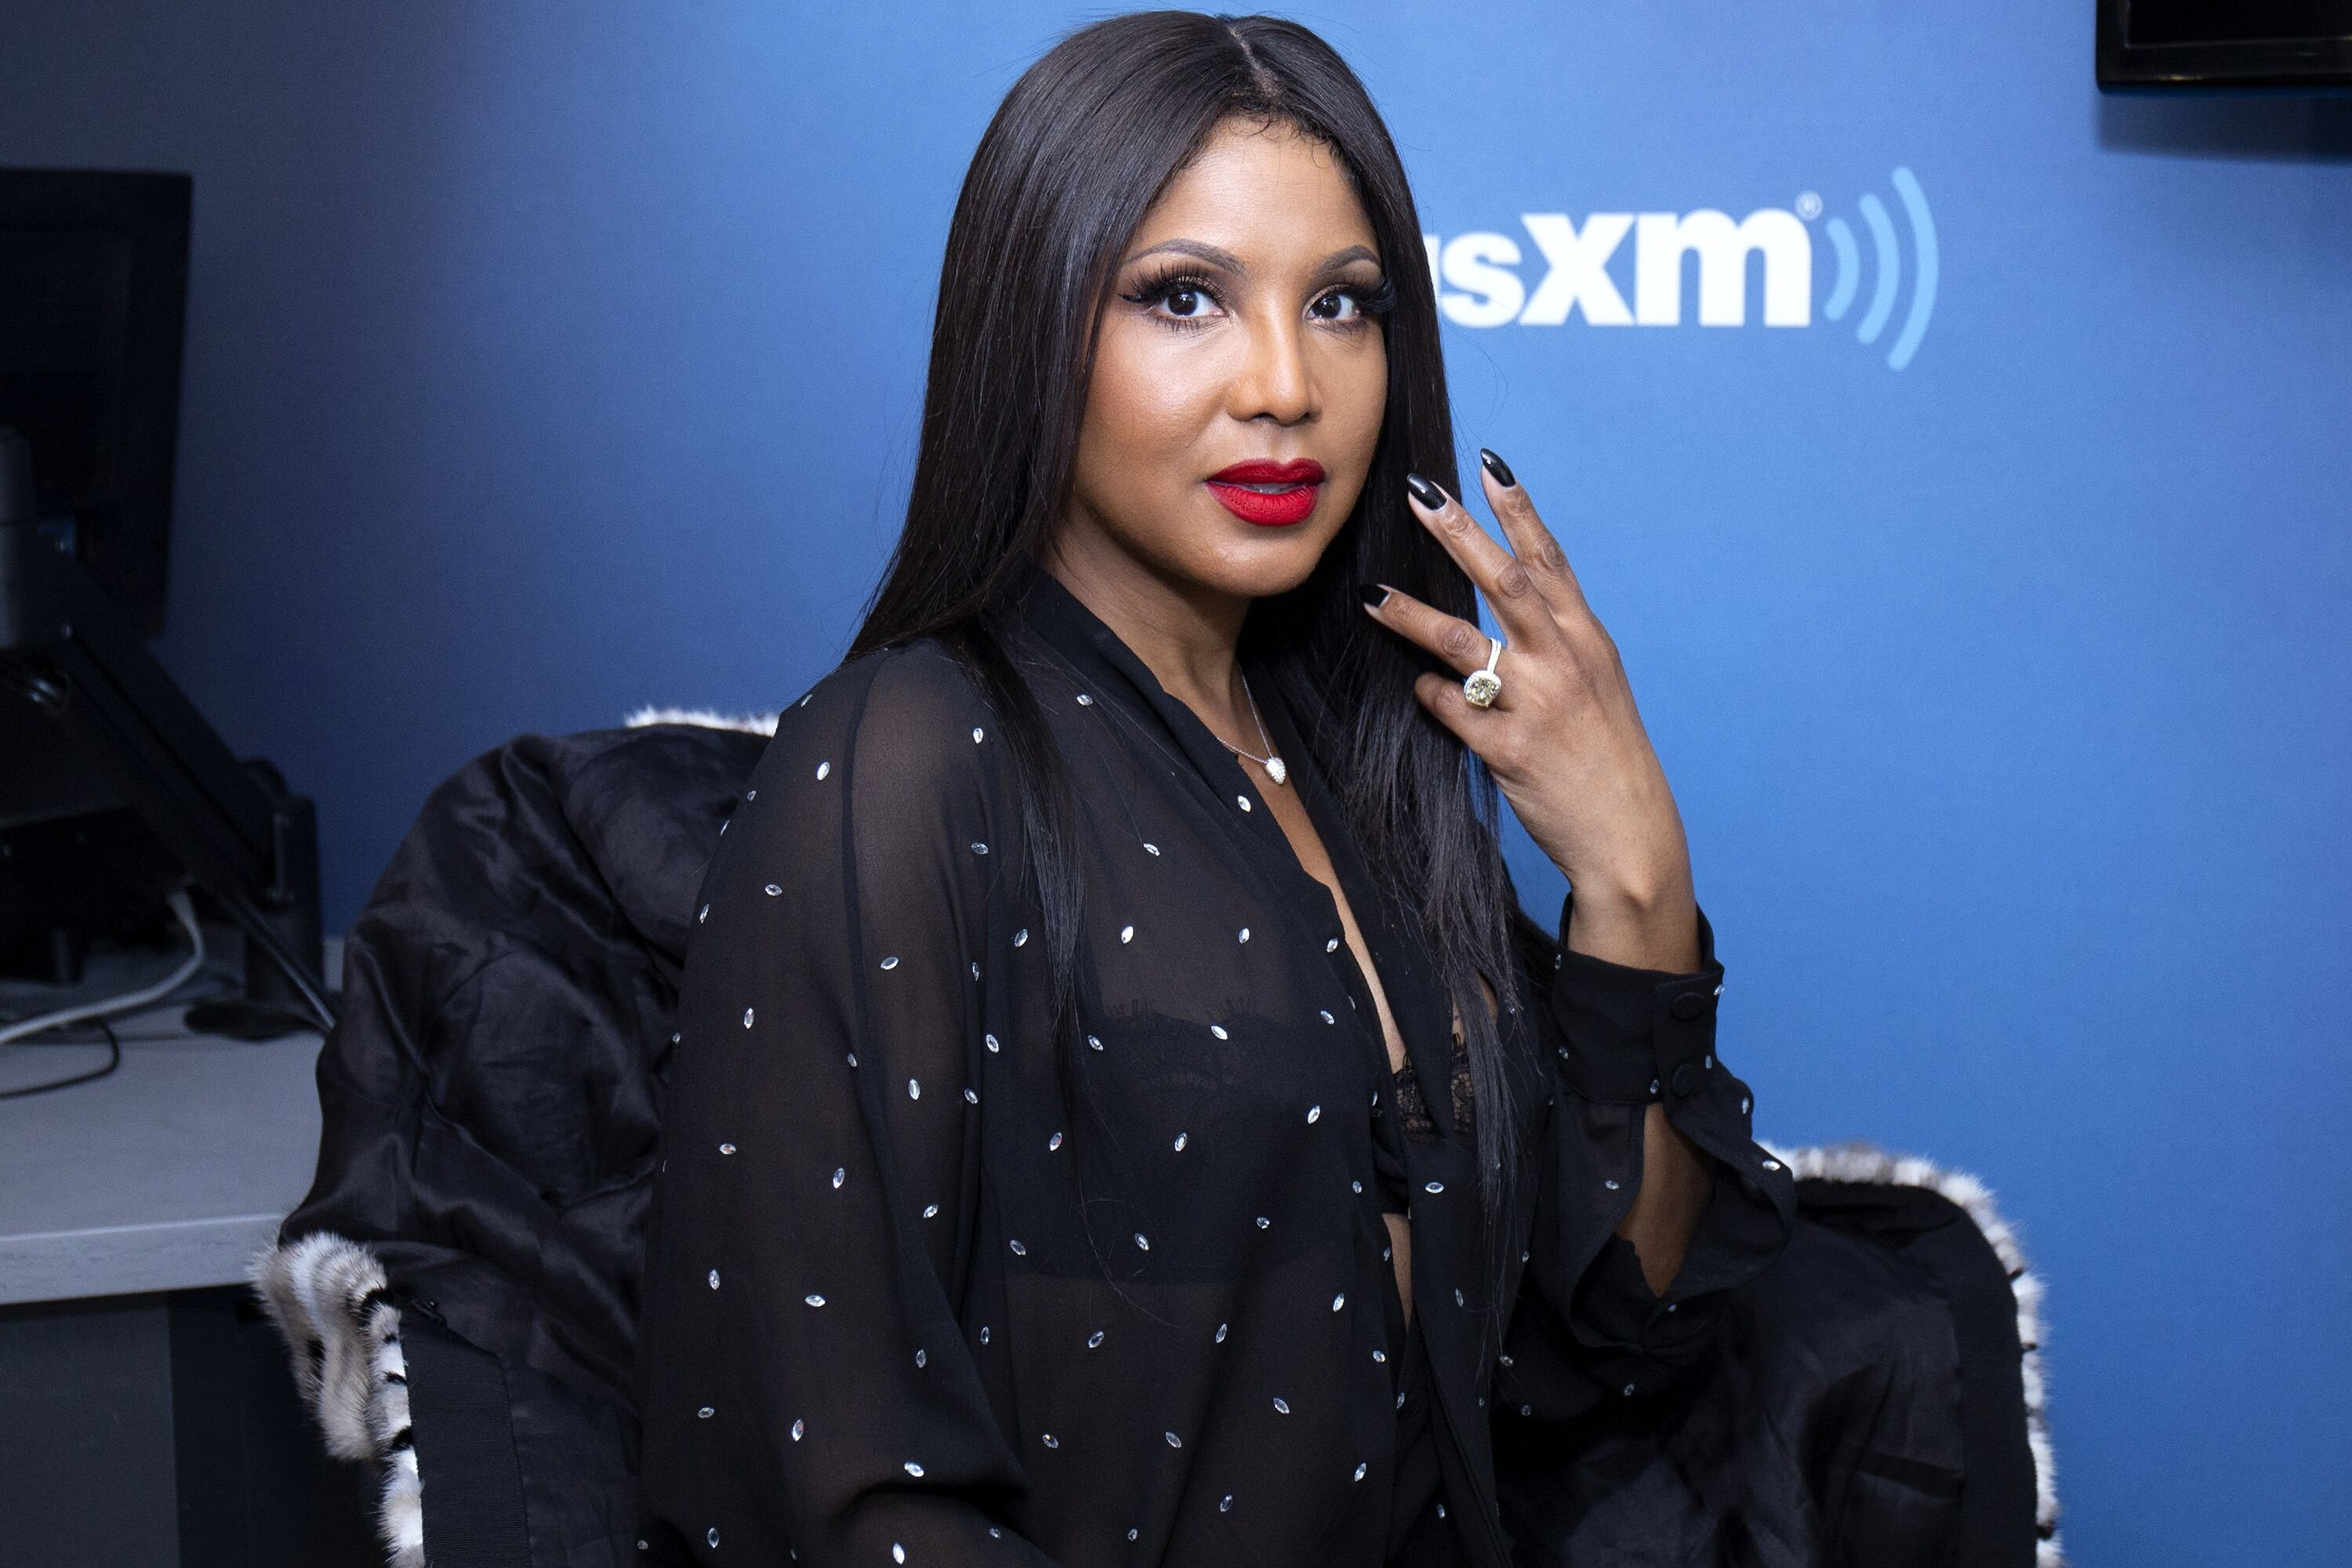 Toni Braxton visits SiriusXM. | Source: Getty Images